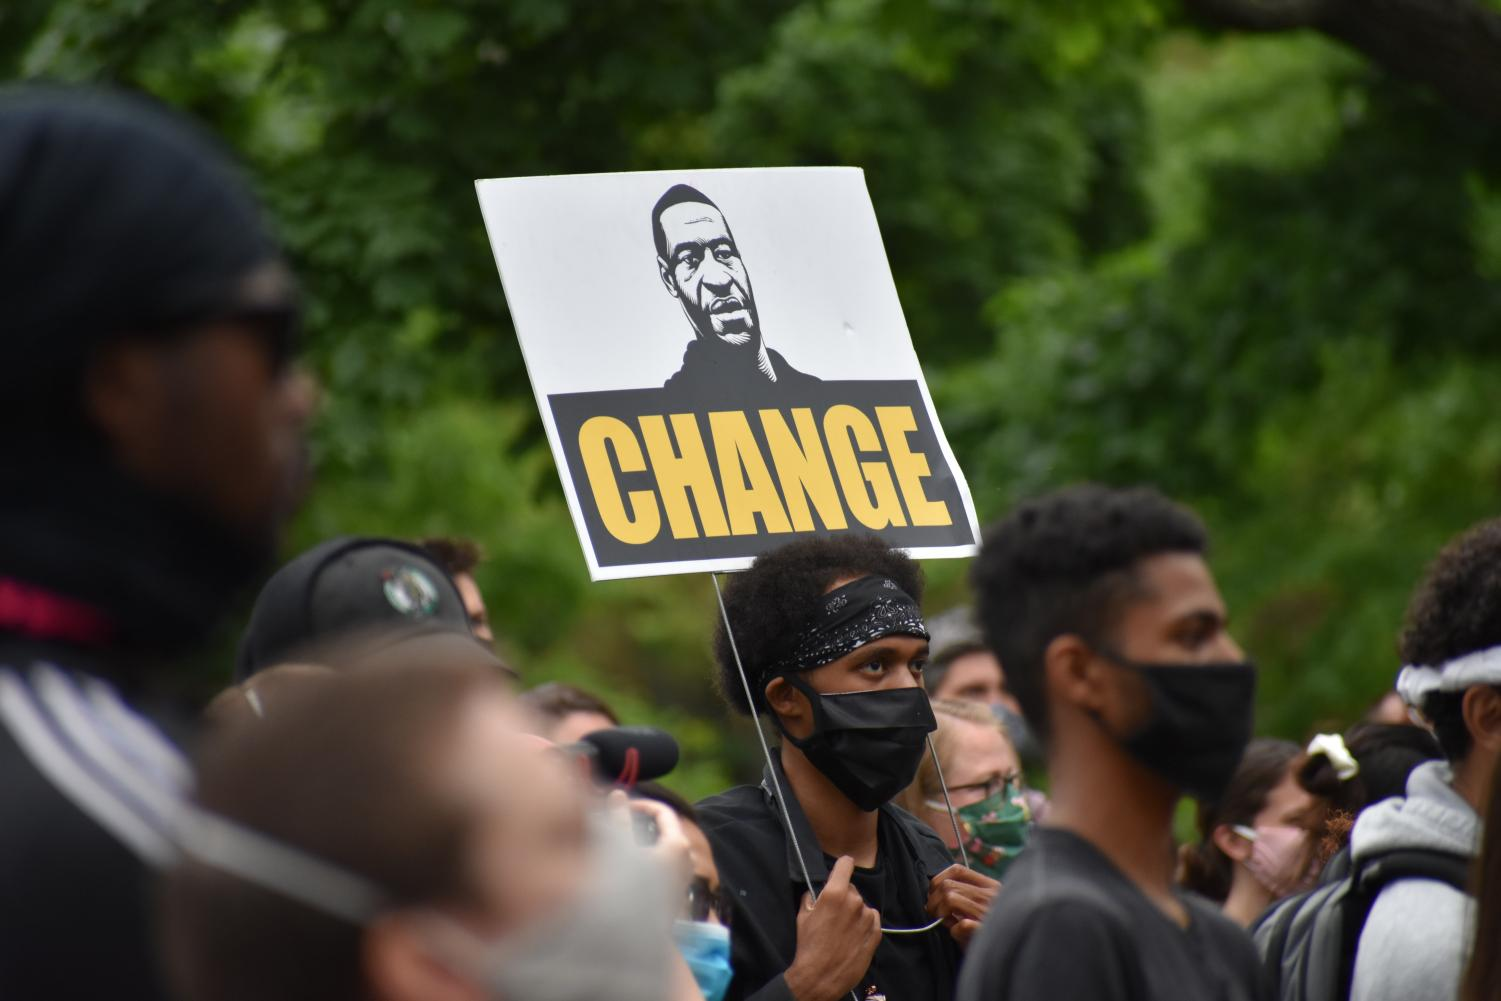 Scenes From Cambridge Protests: A Continuously Updated Gallery